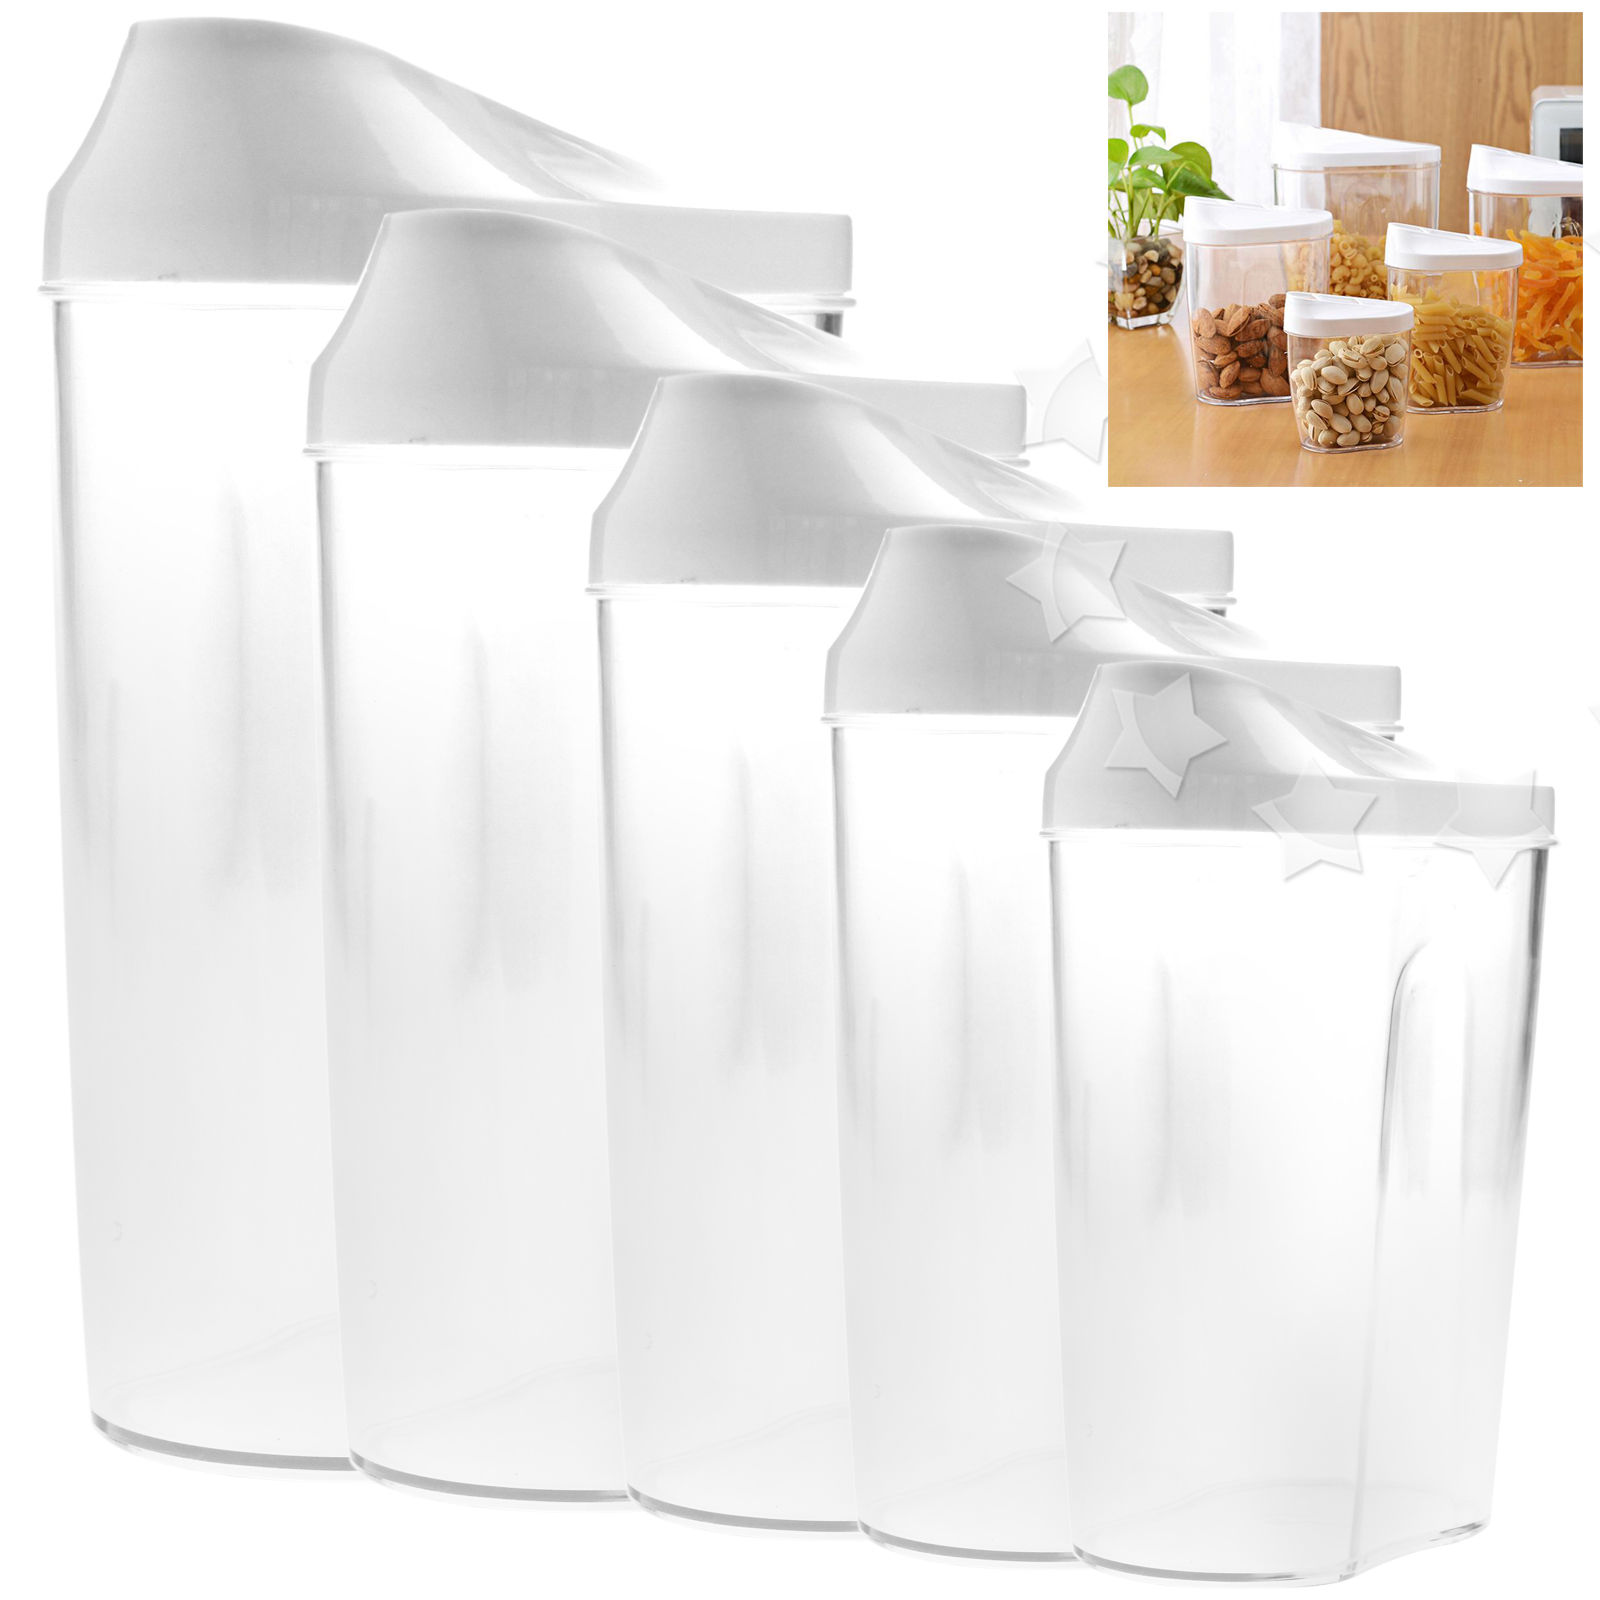 5pcs Dry Food Storage Box Plastic Bucket Cereal Cabinets Container Set 1